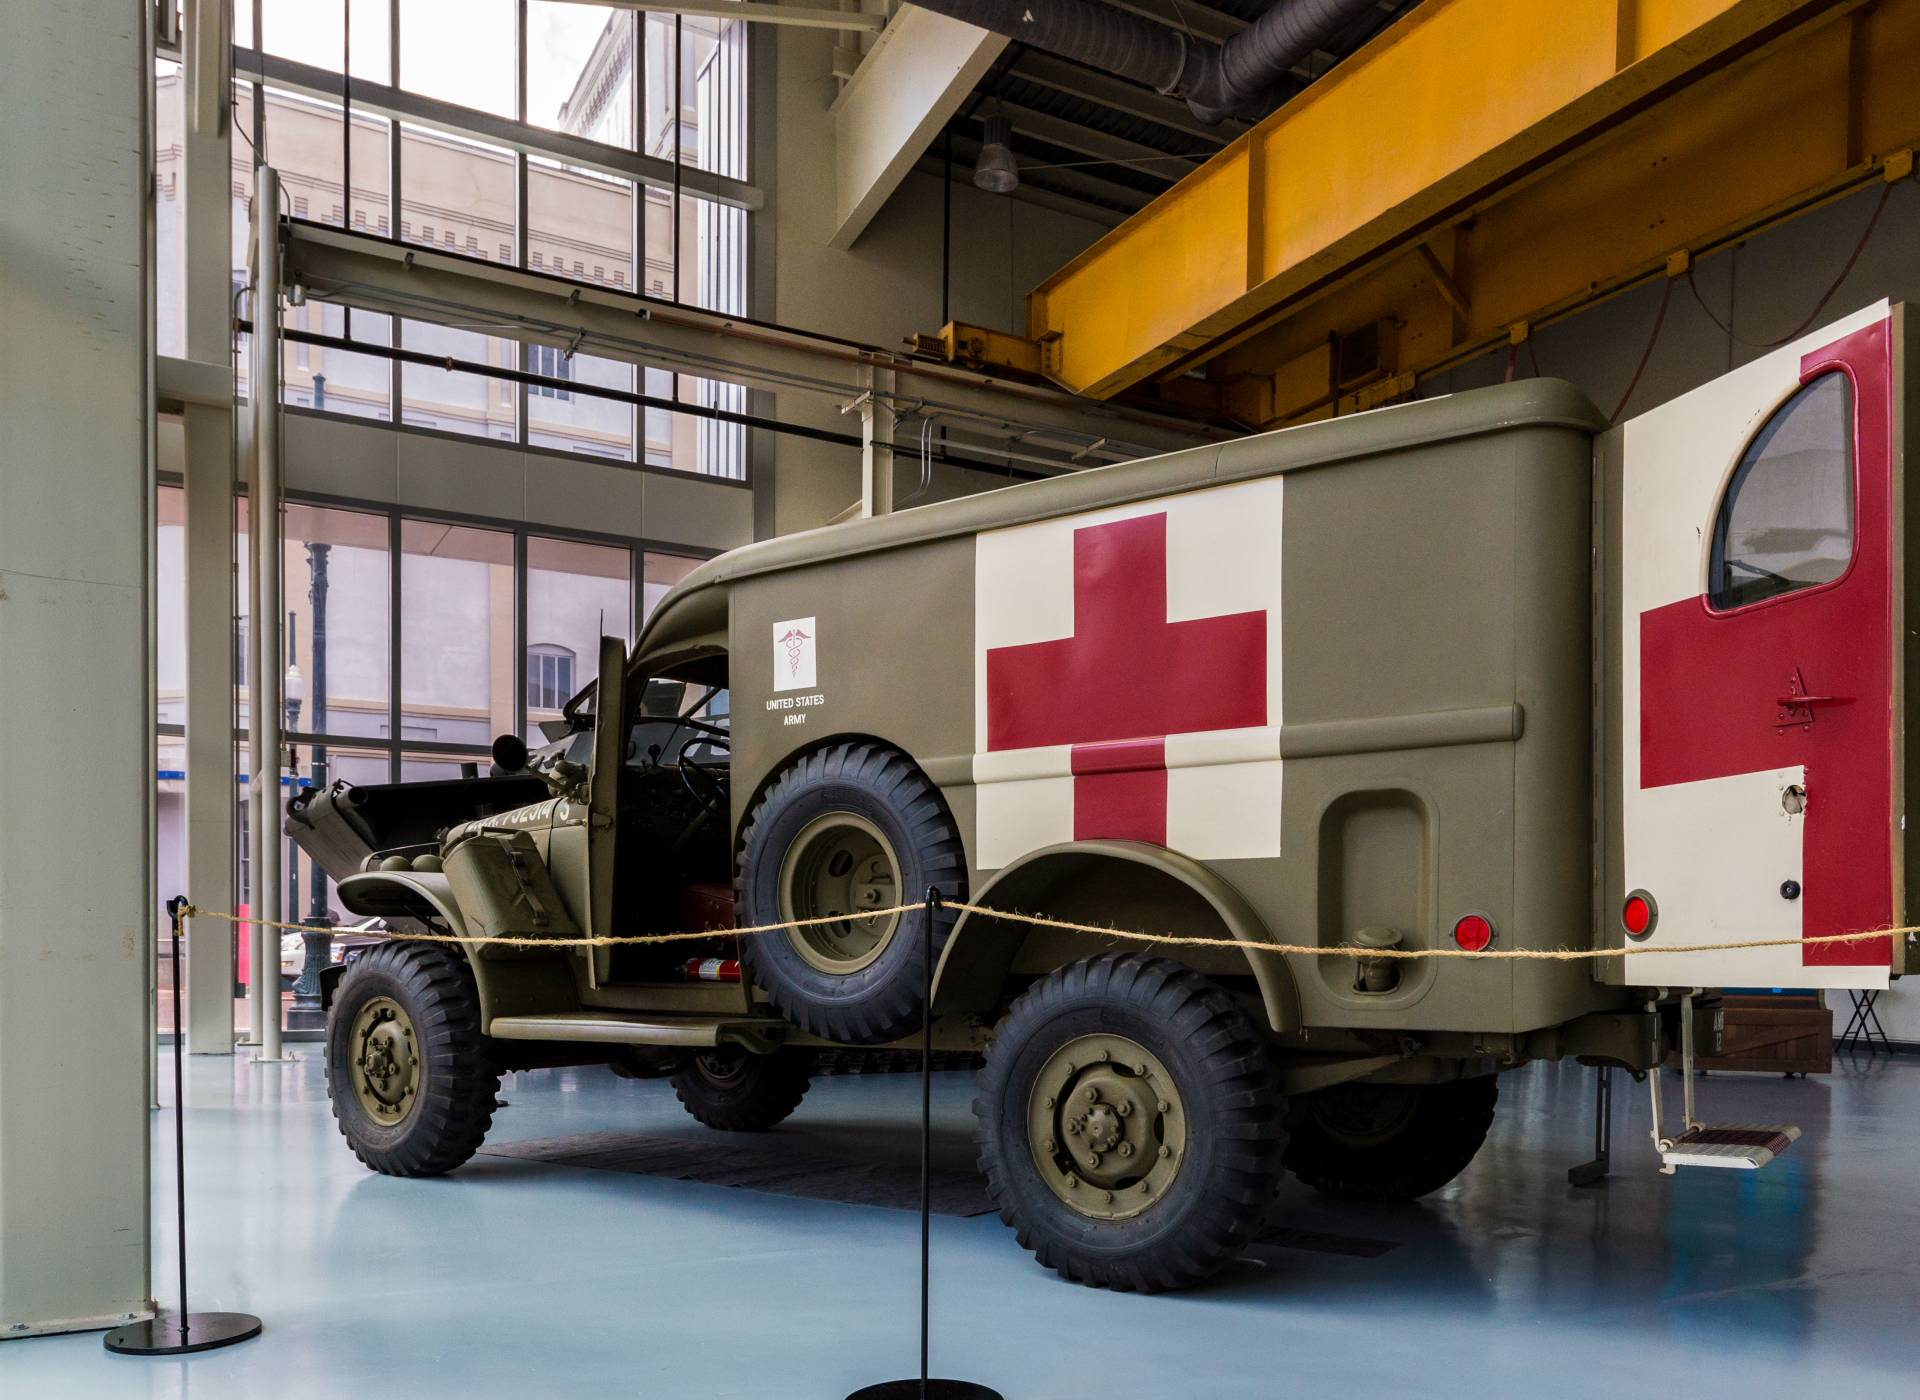 Dodge WC 54 Ambulance The National WWII Museum